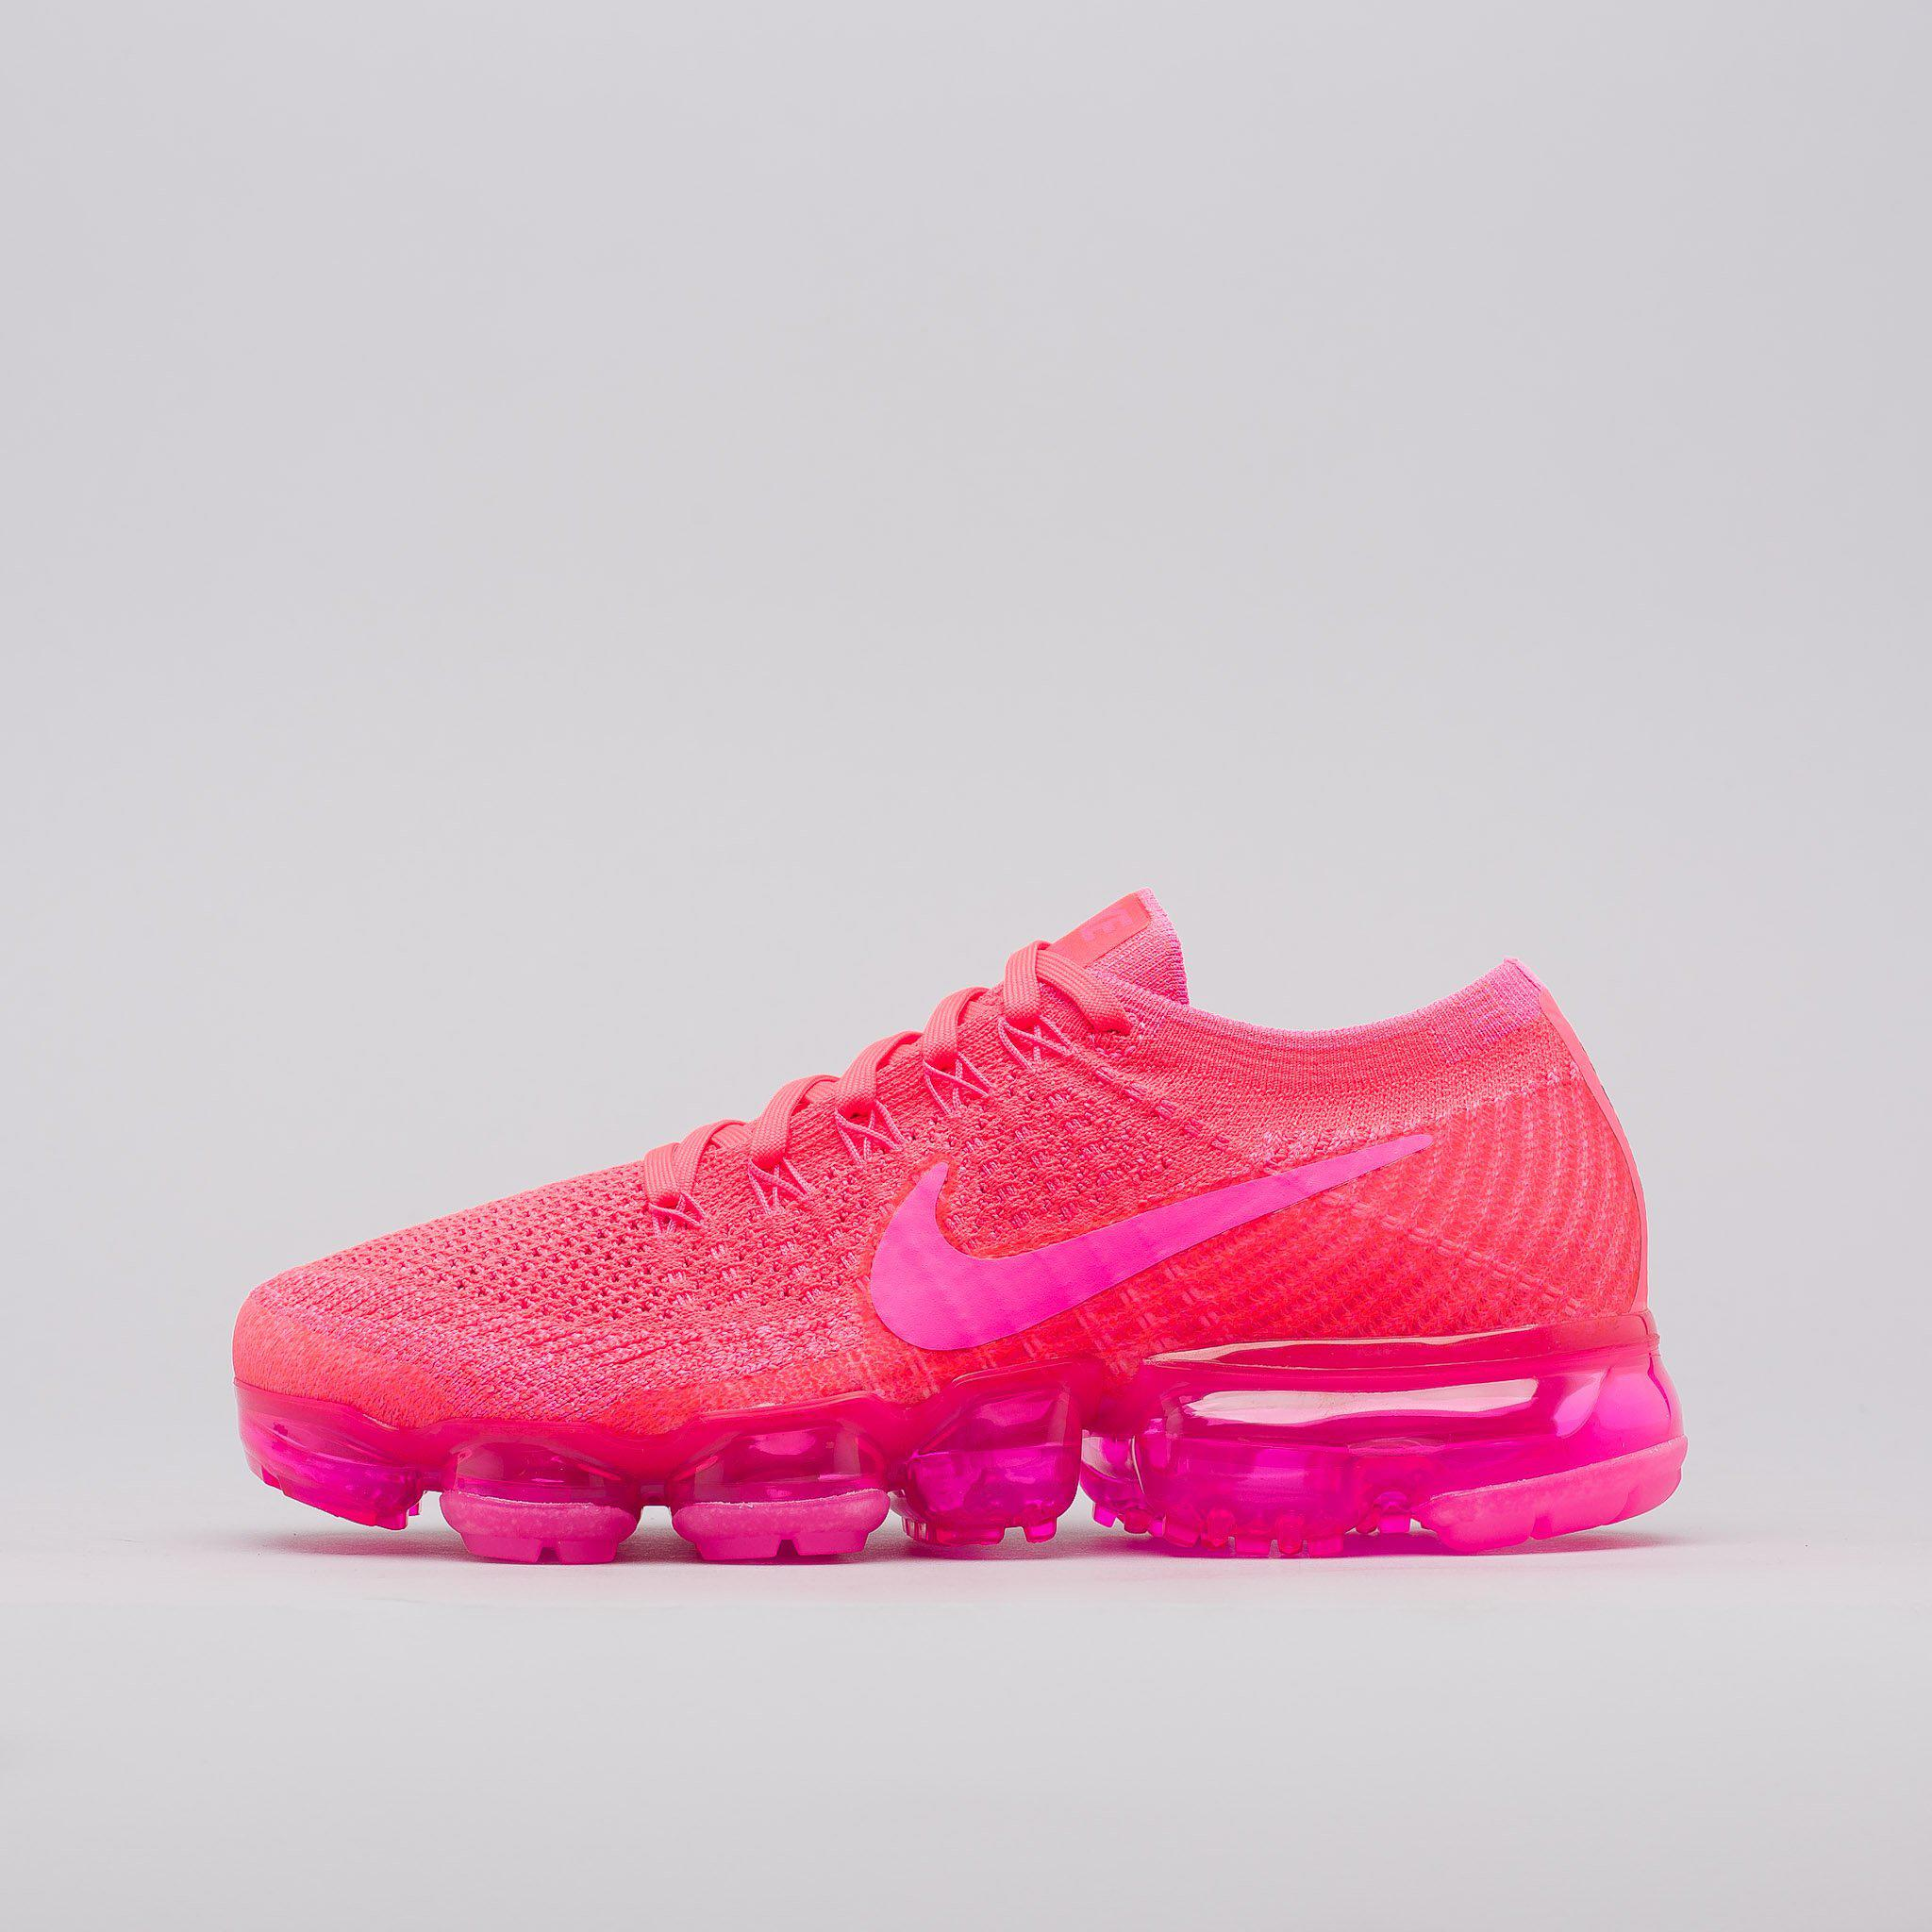 official photos 41183 74789 Nike Pink Women's Air Vapormax Flyknit In Hyper Punch for men